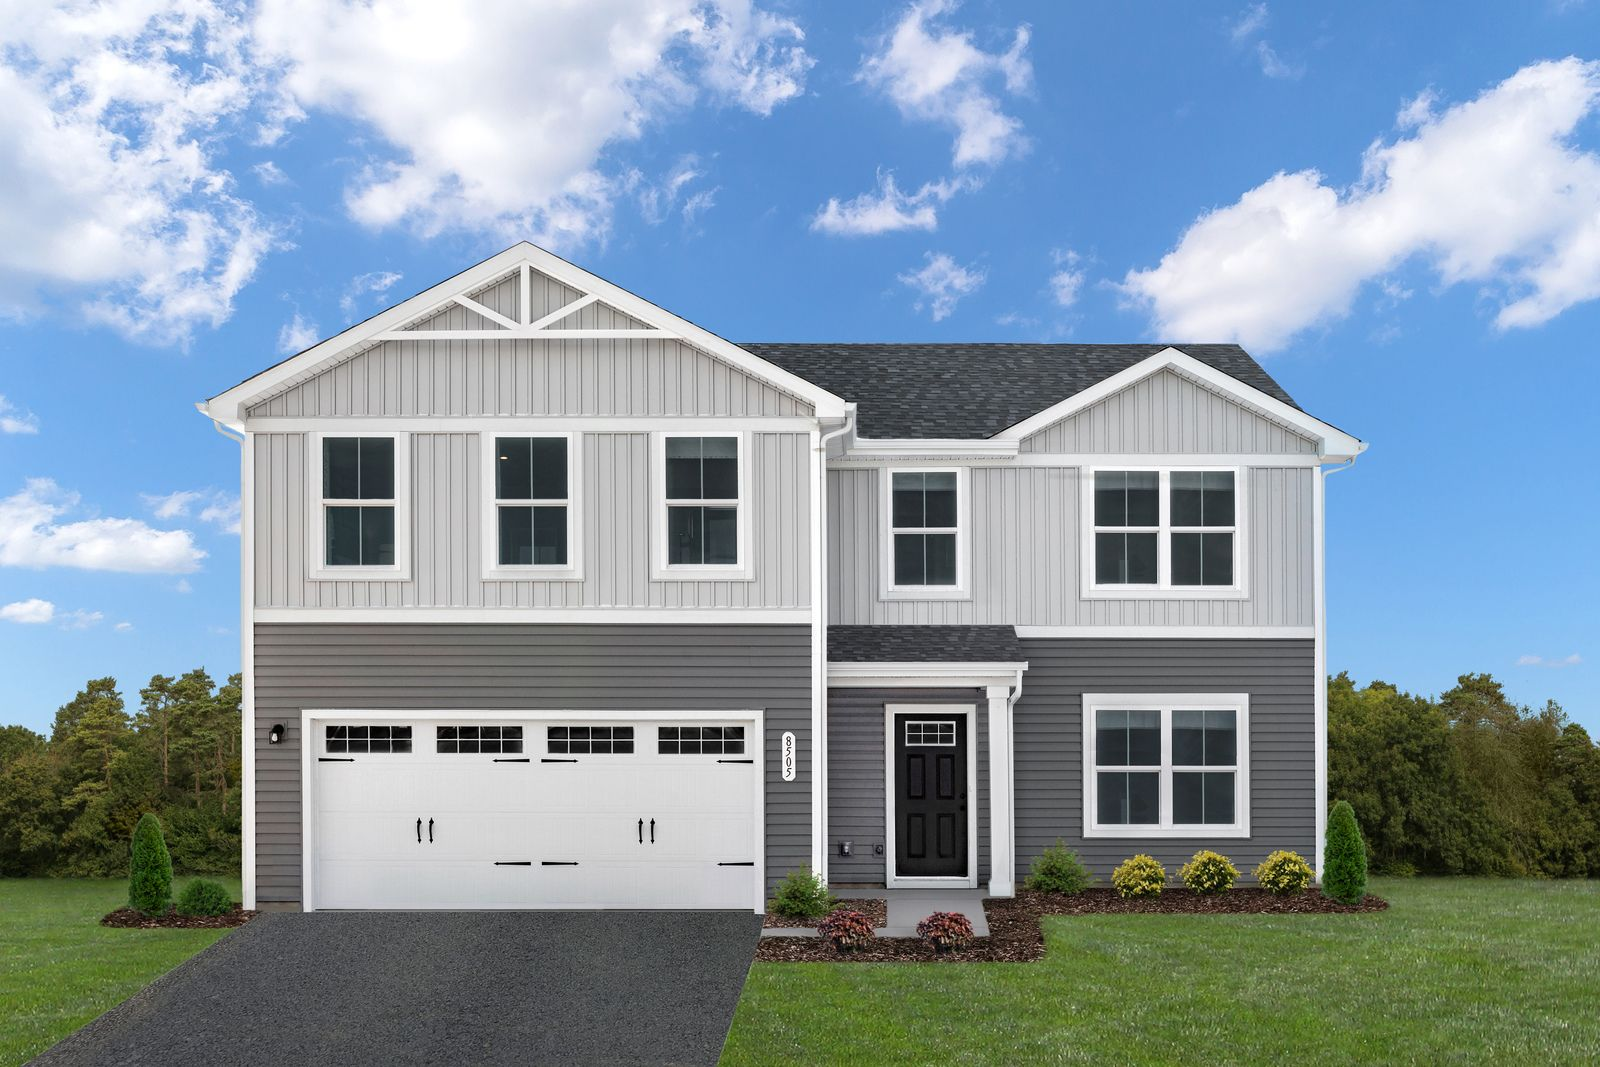 WELCOME TO CHESTNUT RIDGE:Own a single with 3-5 bedrooms, a 2-car garage and a spacious yard in a quiet Chester County location minutes from 322 for less than a new townhome.Click here to join the VIP list today!